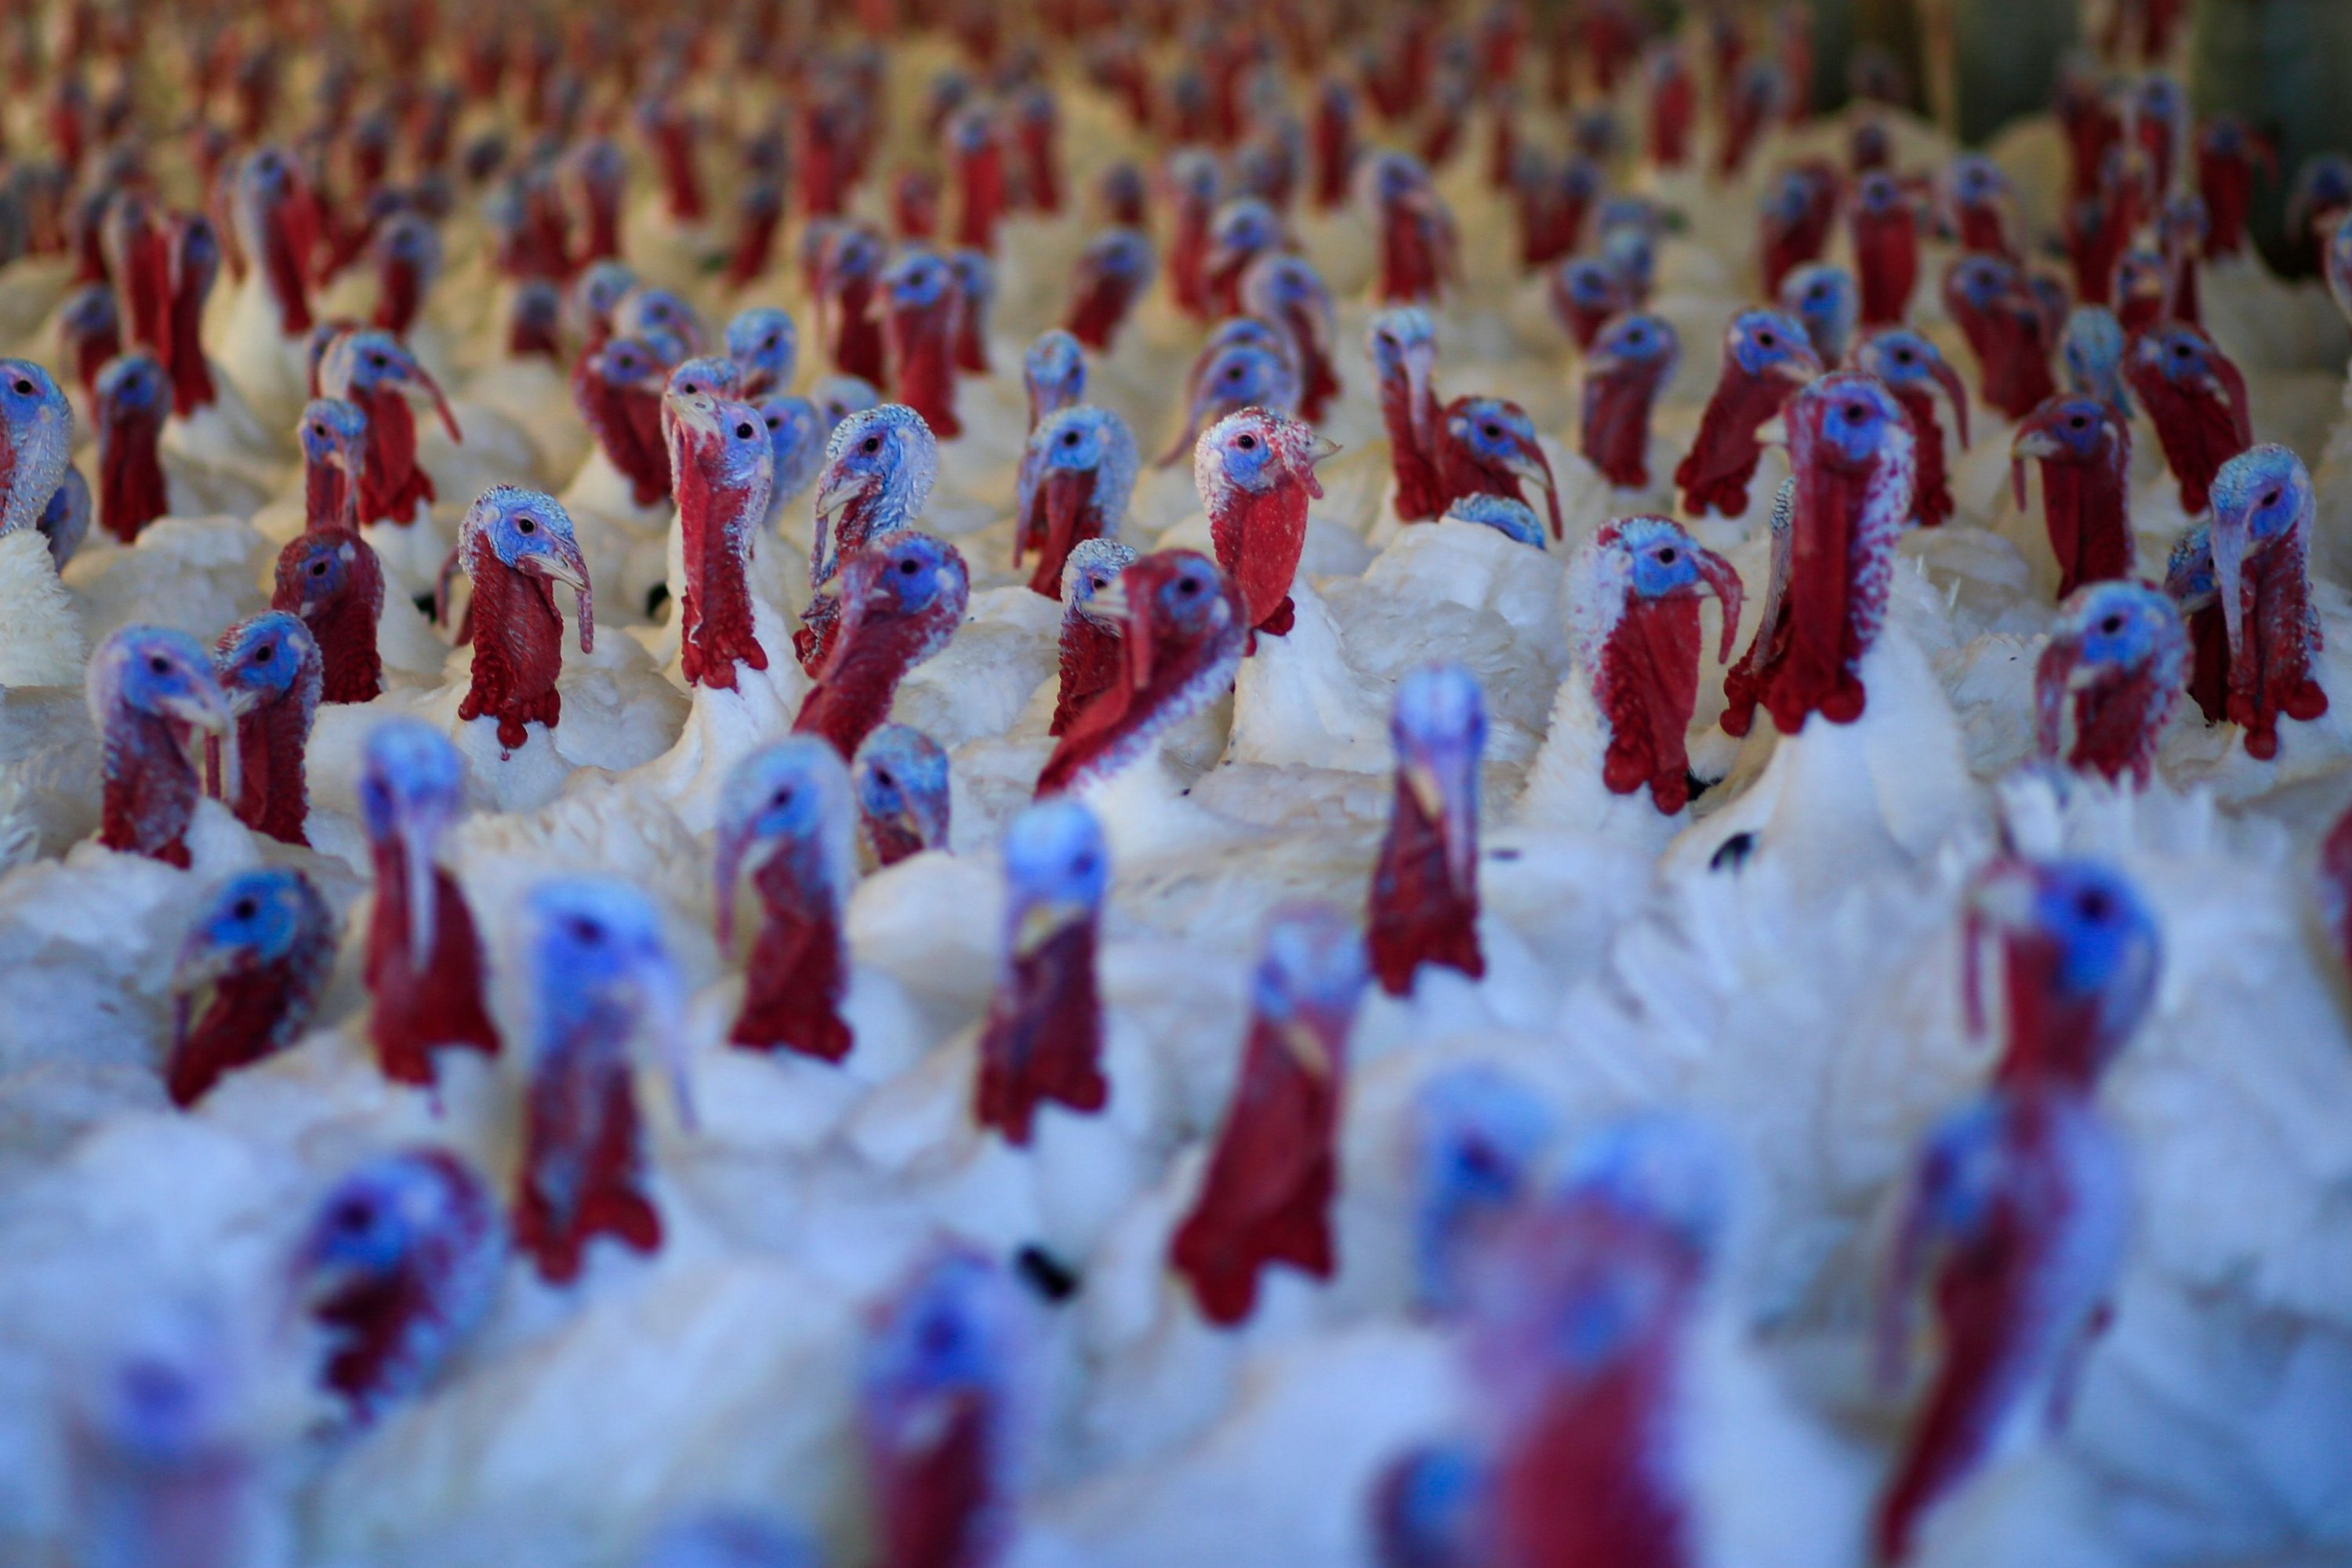 Turkeys are seen at a farm in Orefield, Pennsylvania, on November 20, 2020, ahead of the Thanksgiving holiday. (AFP Photo)